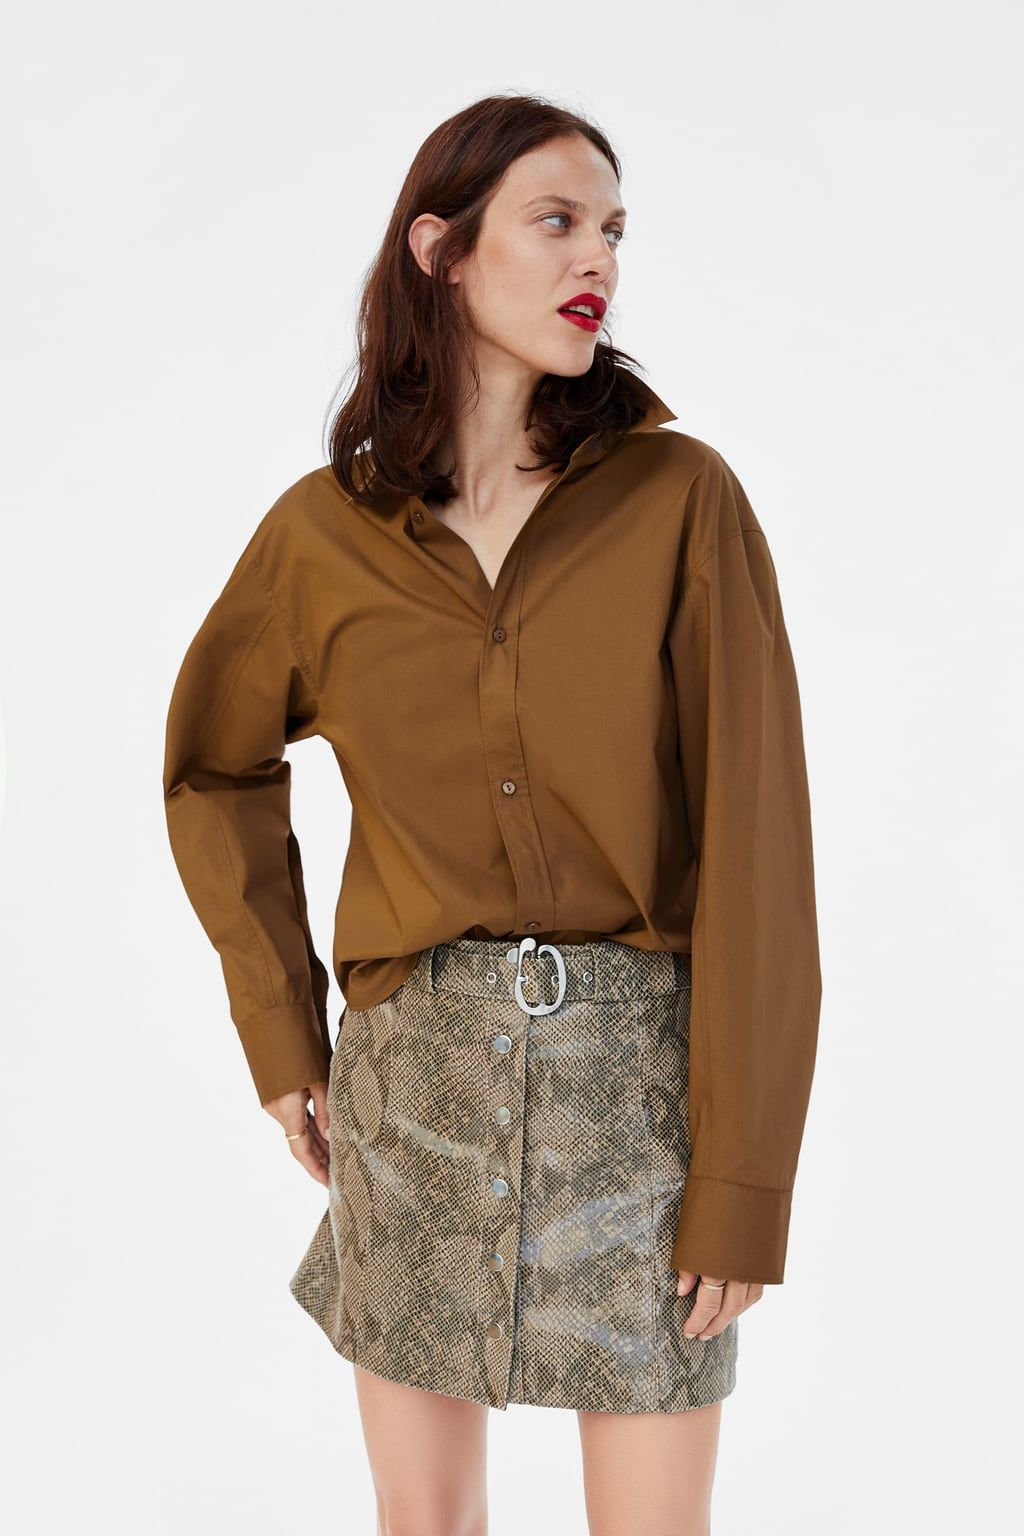 Purchase > zara leather snake print skirt, Up to 73% OFF